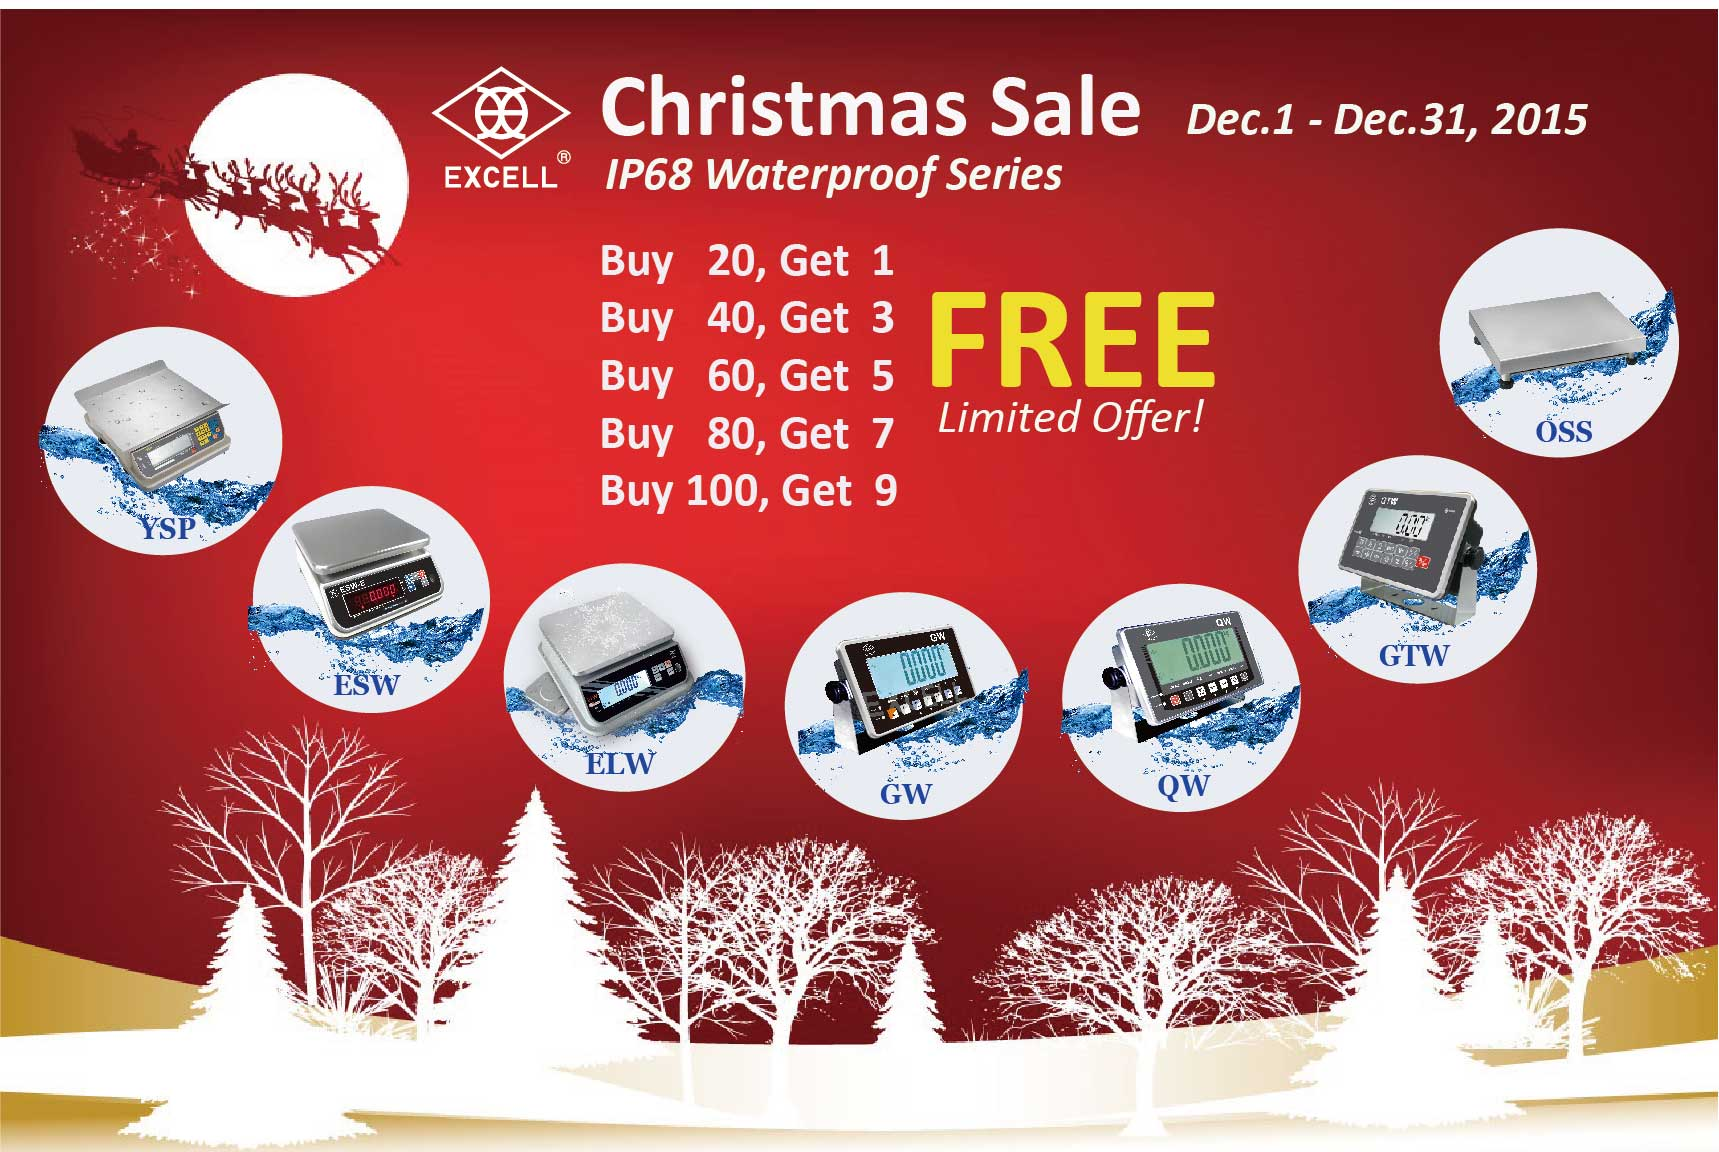 Christmas Loan Promotions.Excell Launches Christmas Sales Promotion On Ip68 Waterproof